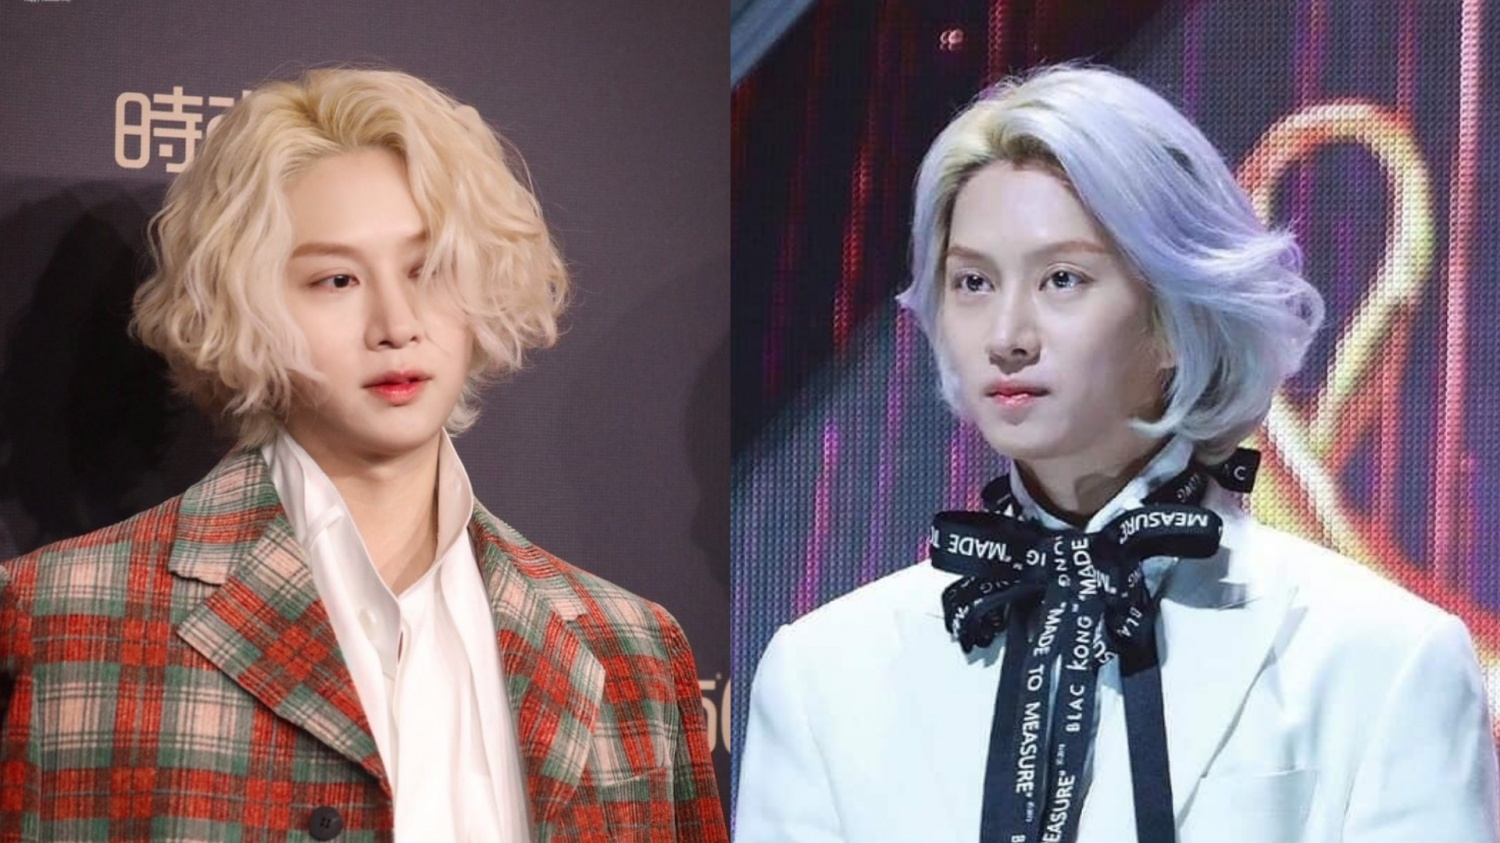 Which Hairsyle Does Heechul Rock The Most With His Blonde Hair: Straight or Curly? | KpopStarz